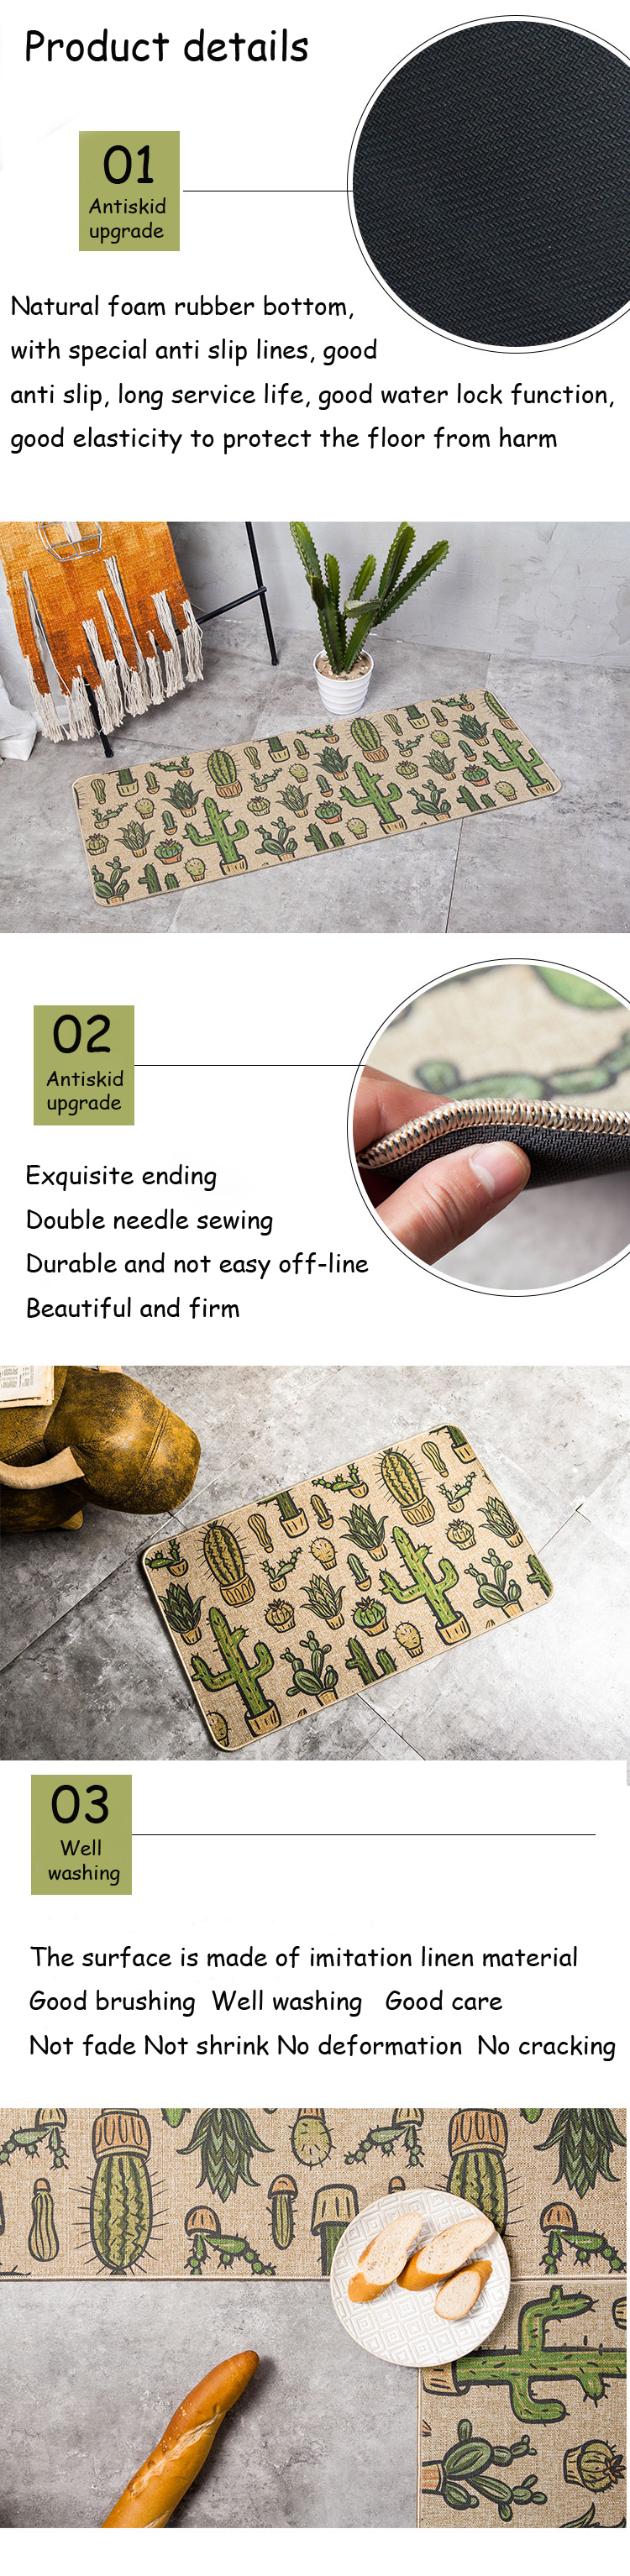 Natural Rubber Back Cactus Kitchen Rug Sets Mat Oil Proof Waterproof Anti  Pollution Non Skid Imitation Linen Cloth Design Carpet   Us518